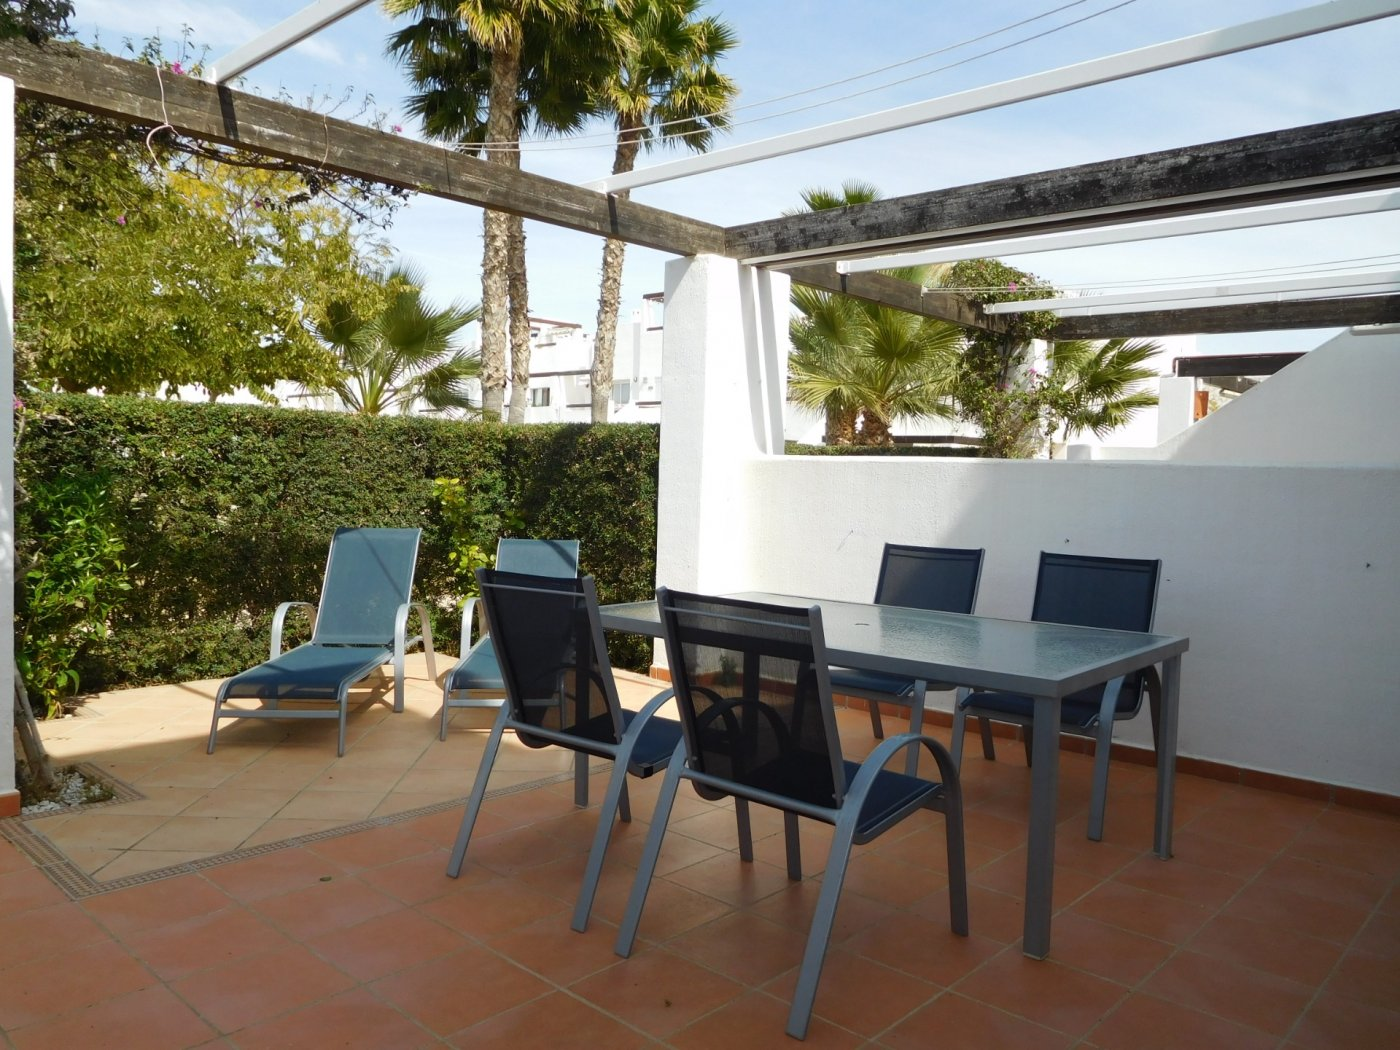 Apartment ref 3265-03251 for rent in Condado De Alhama Spain - Quality Homes Costa Cálida